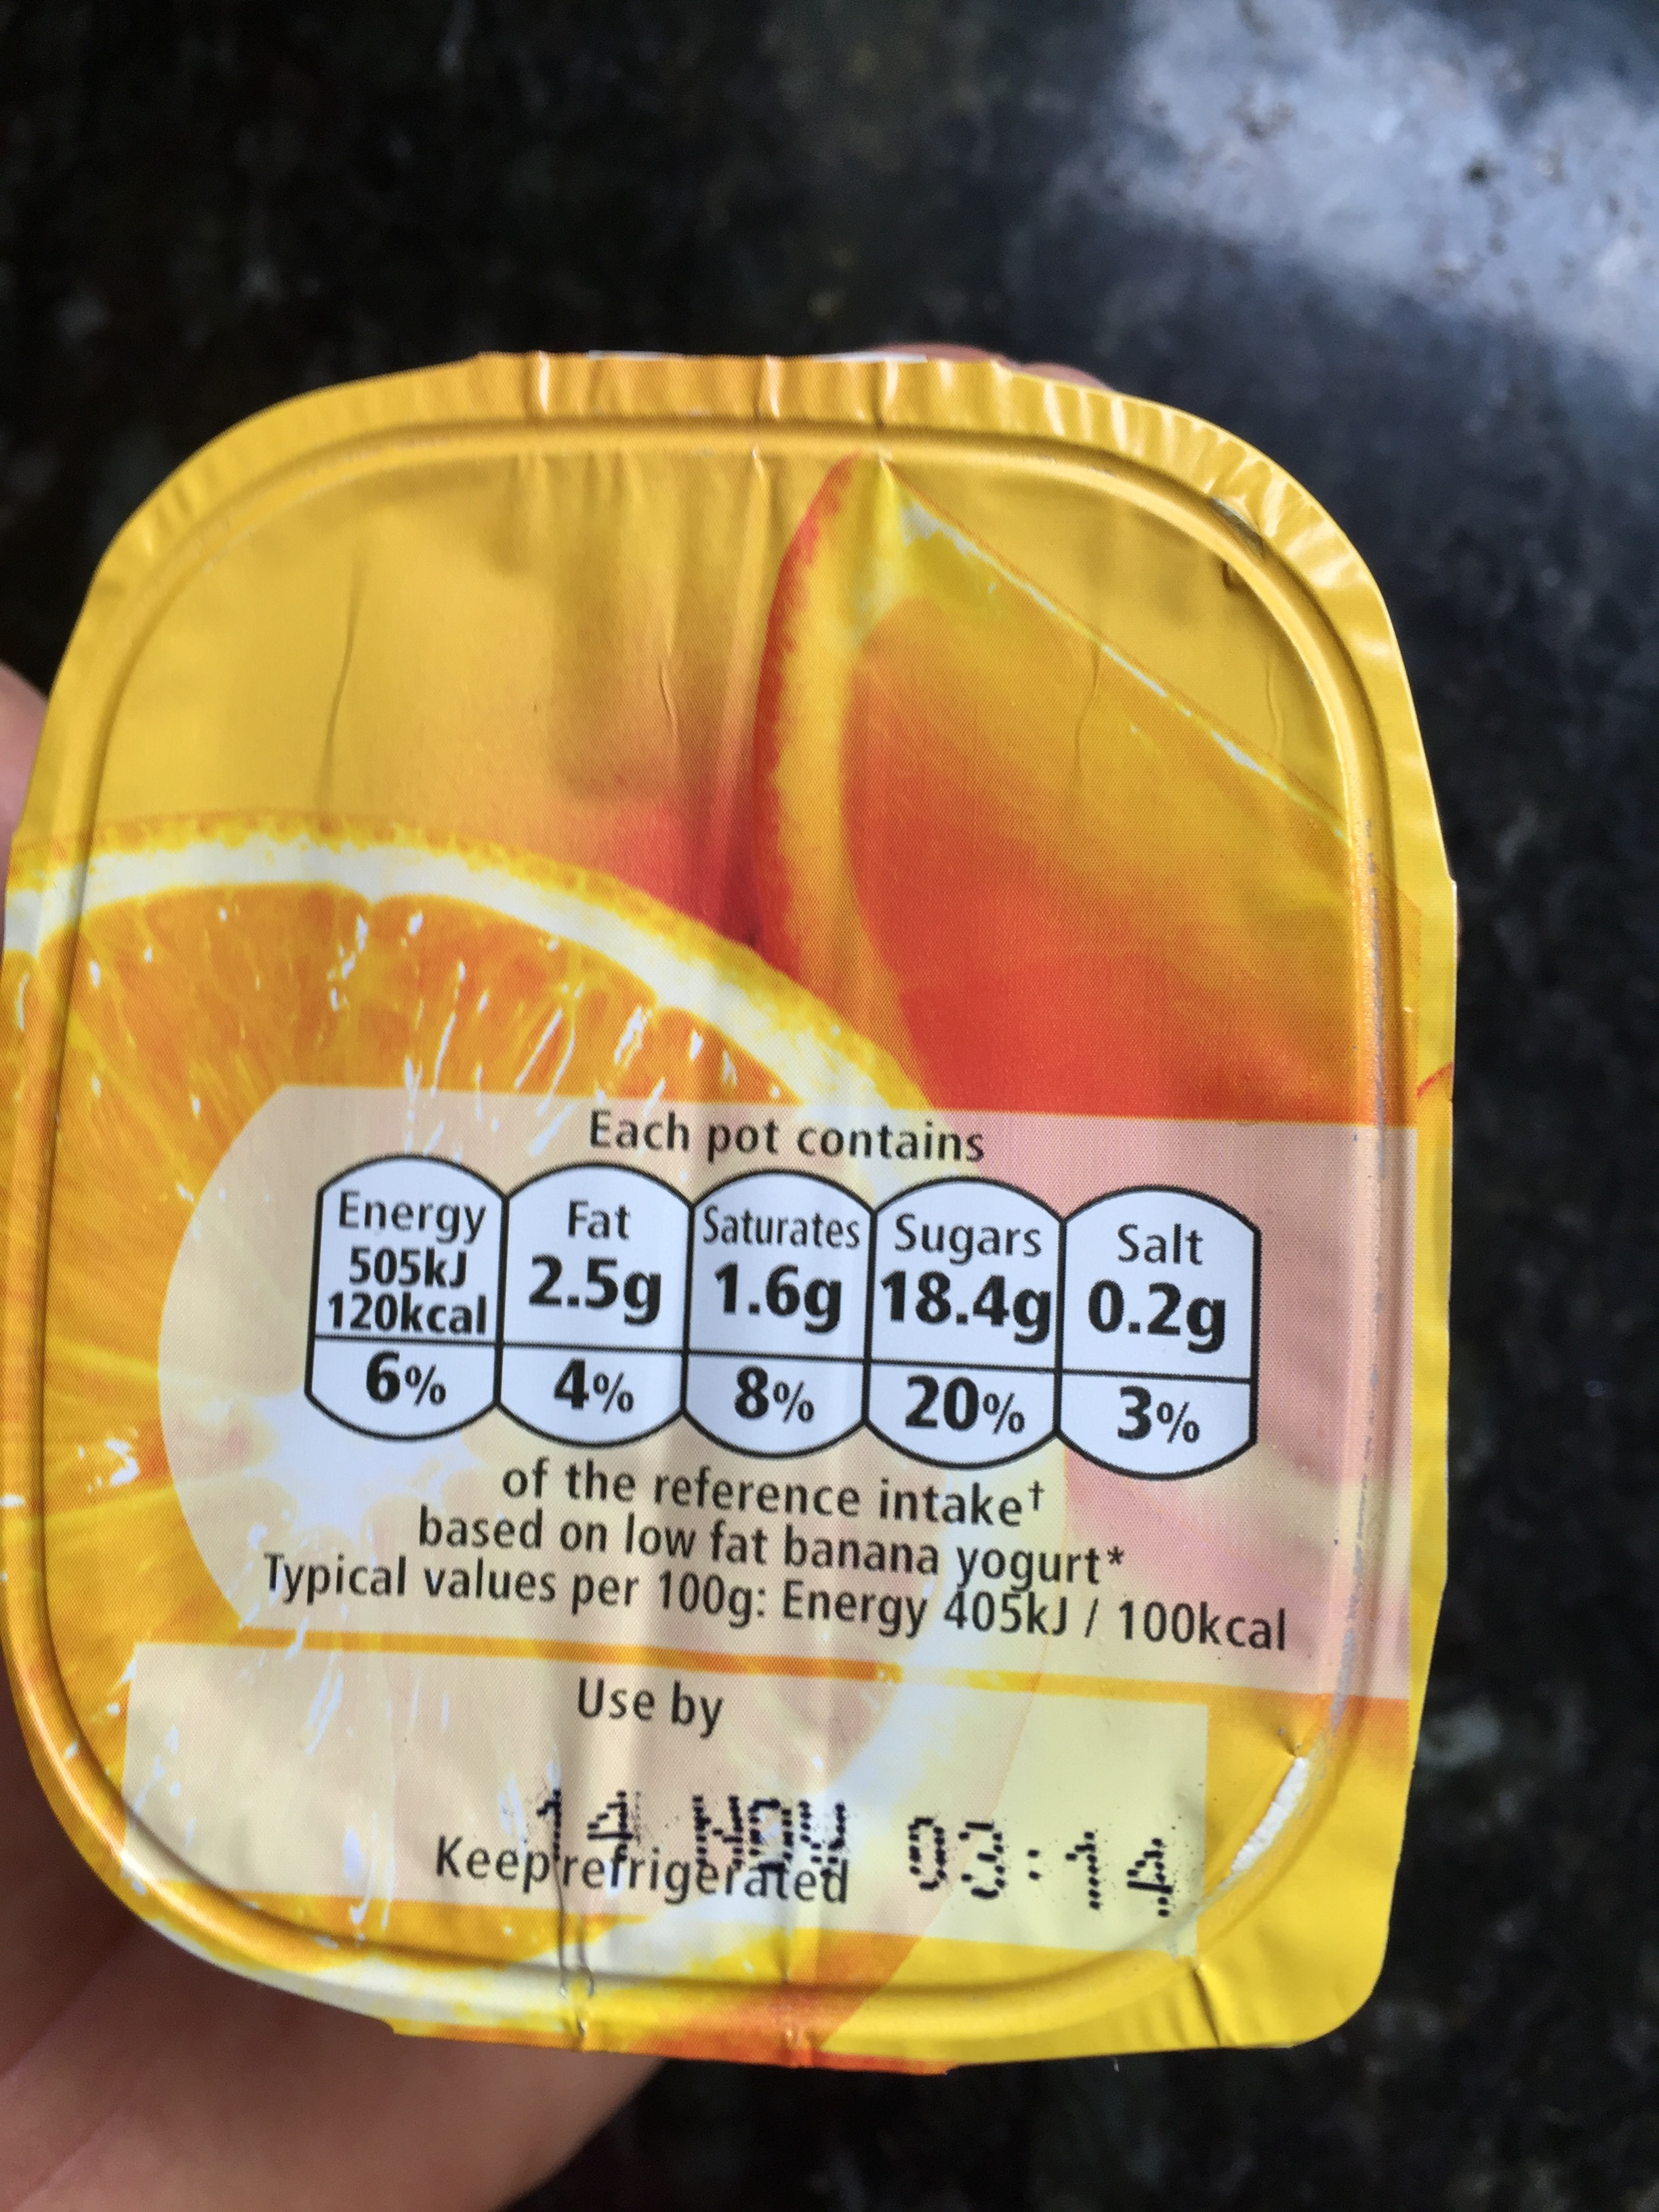 I need statistics that show 12-13 are overweight in the UK. Please help me thanks. (:?